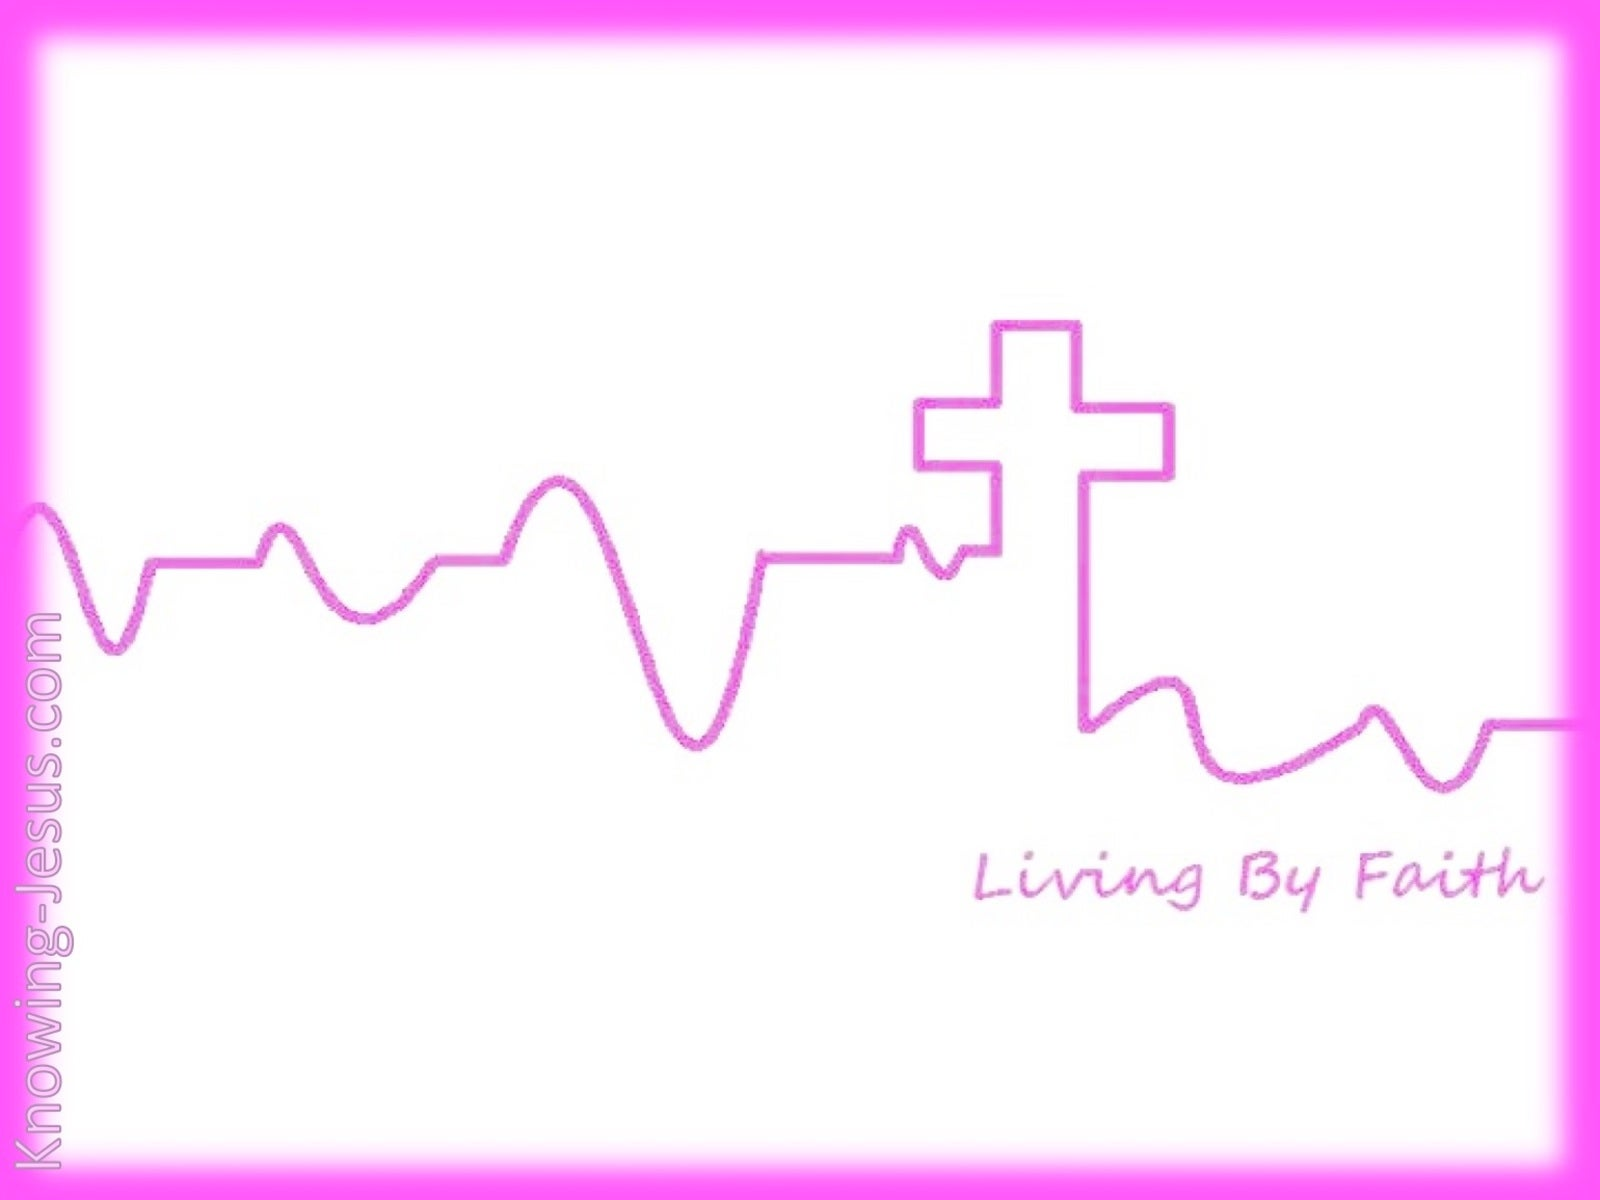 Living By Faith (devotional) (pink)